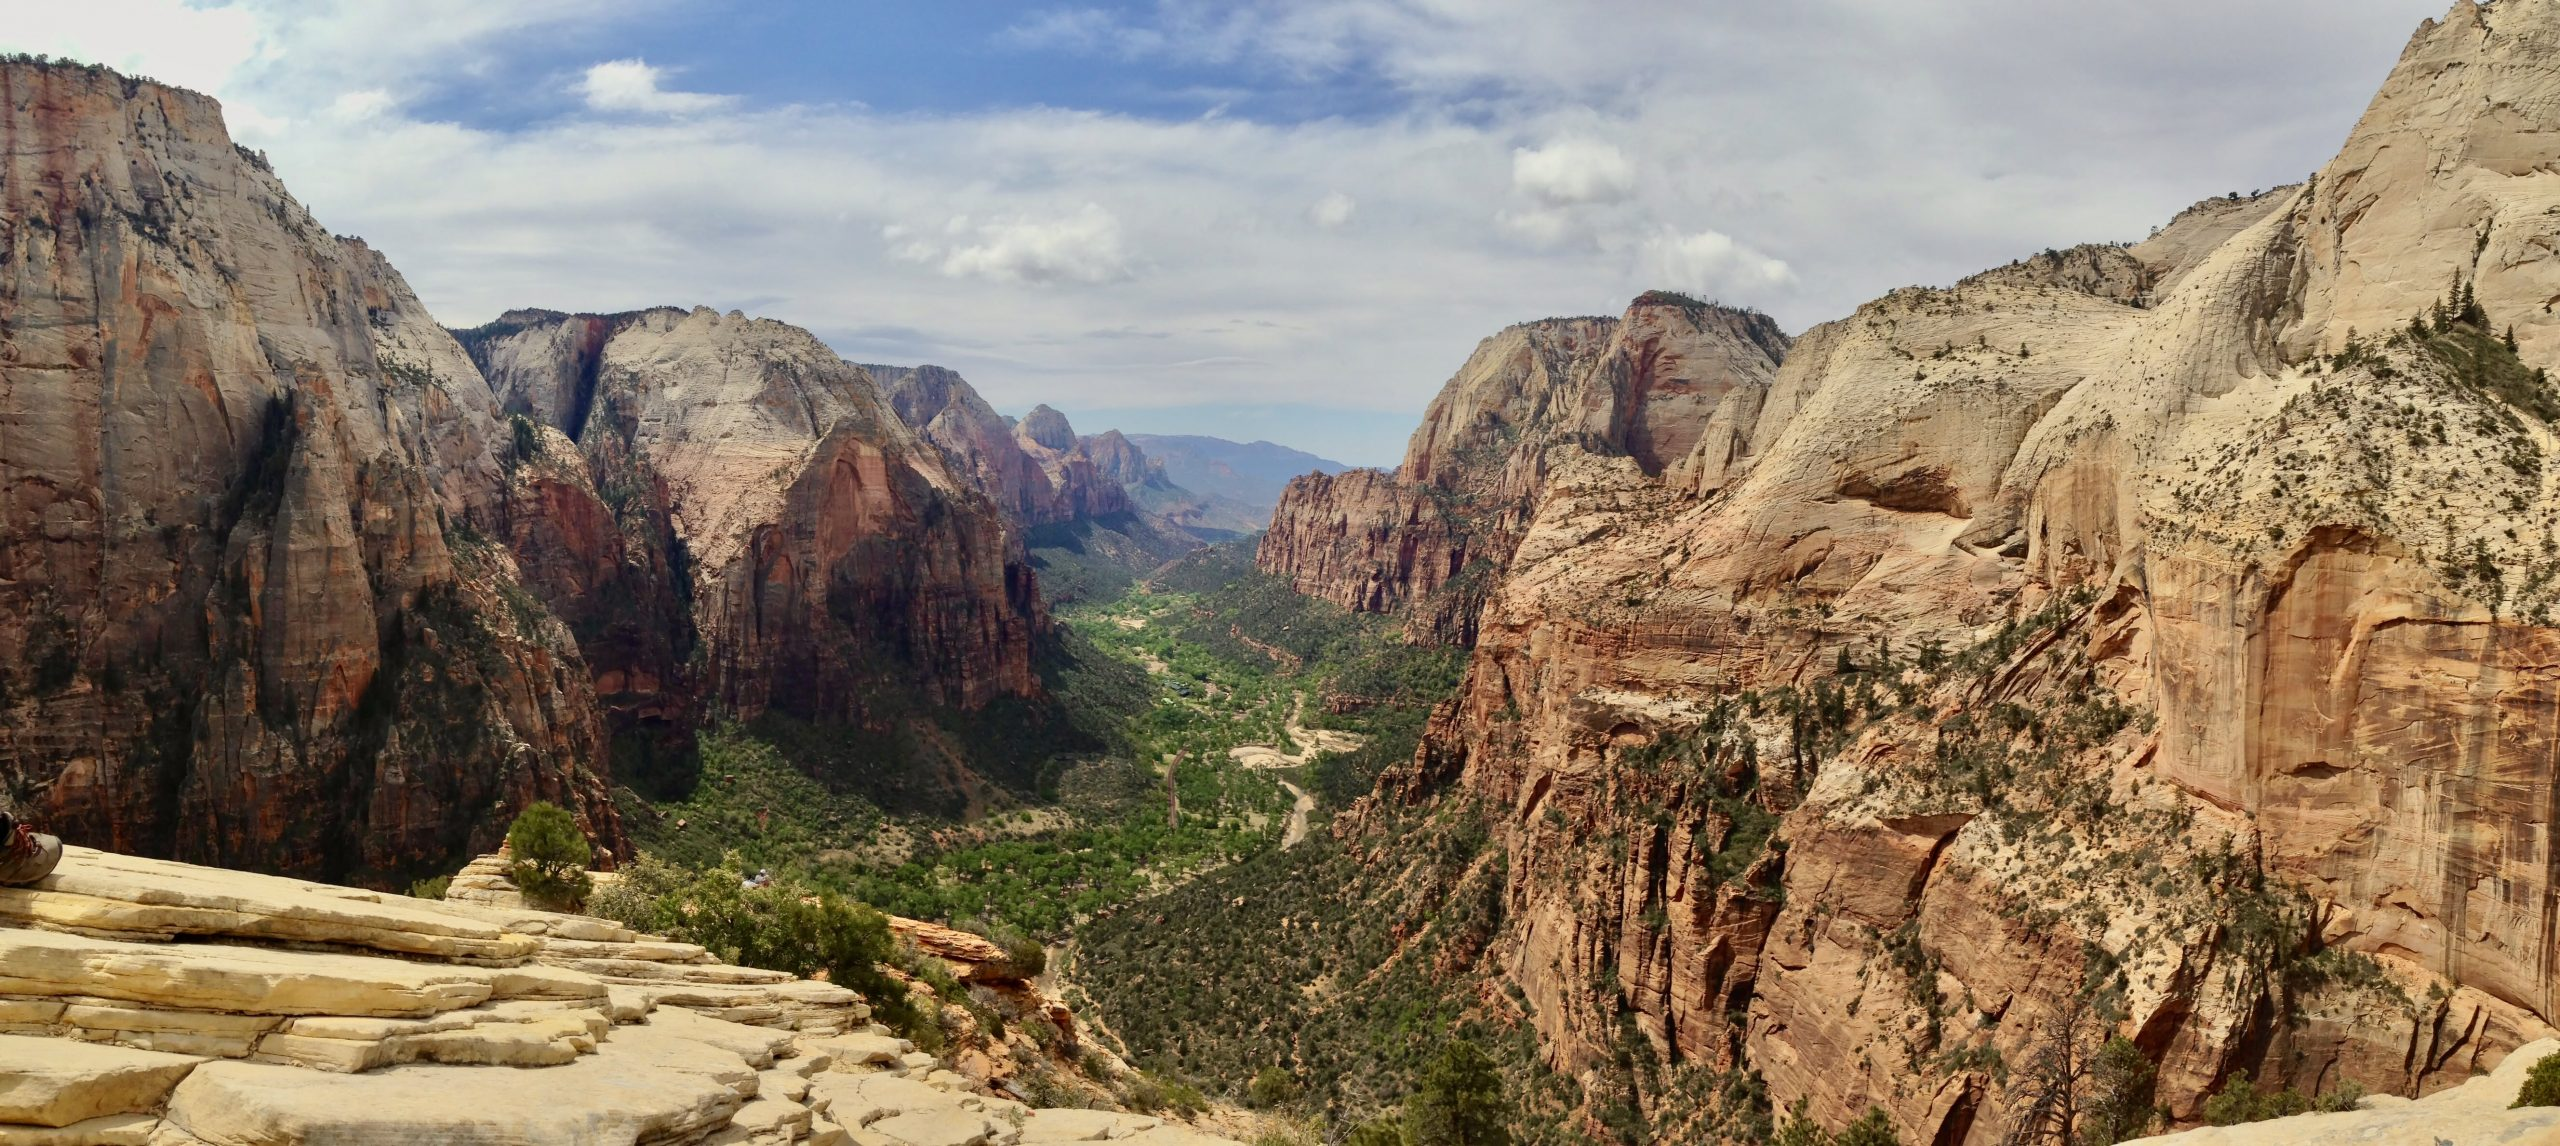 View from the Top of Angel's Landing at Zion National Park